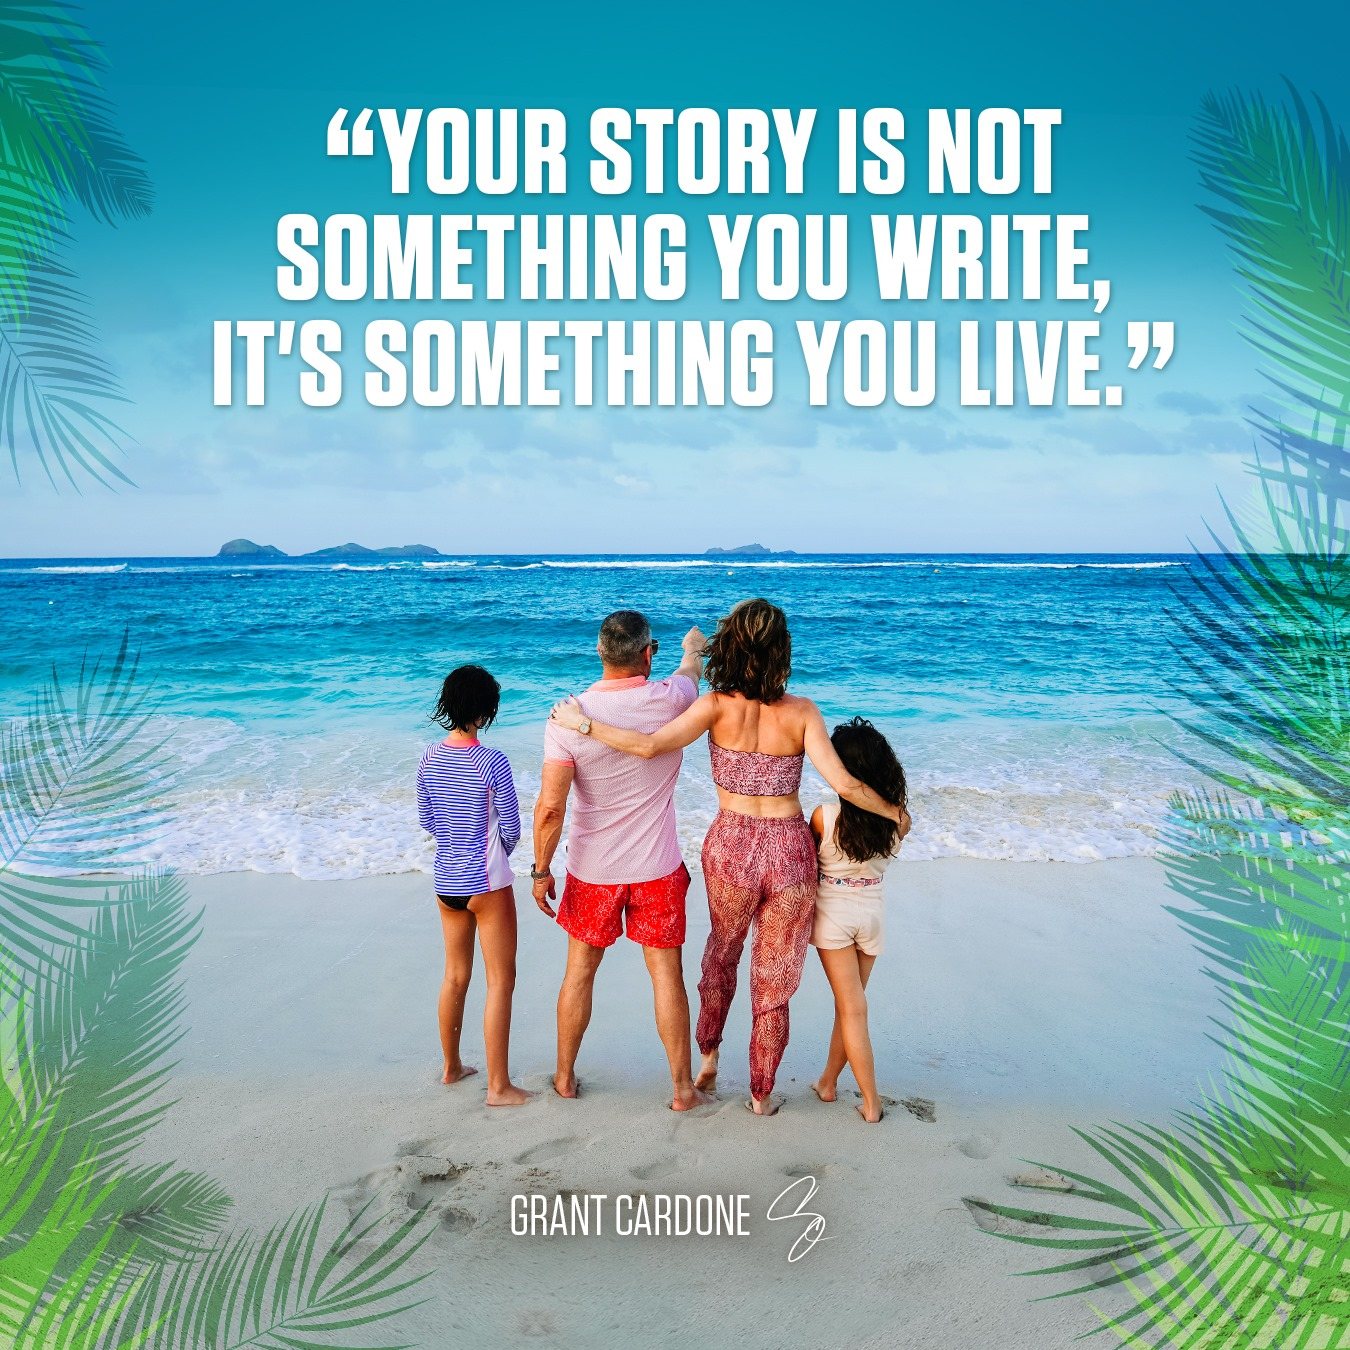 Grant Cardone Quotes with Family Images